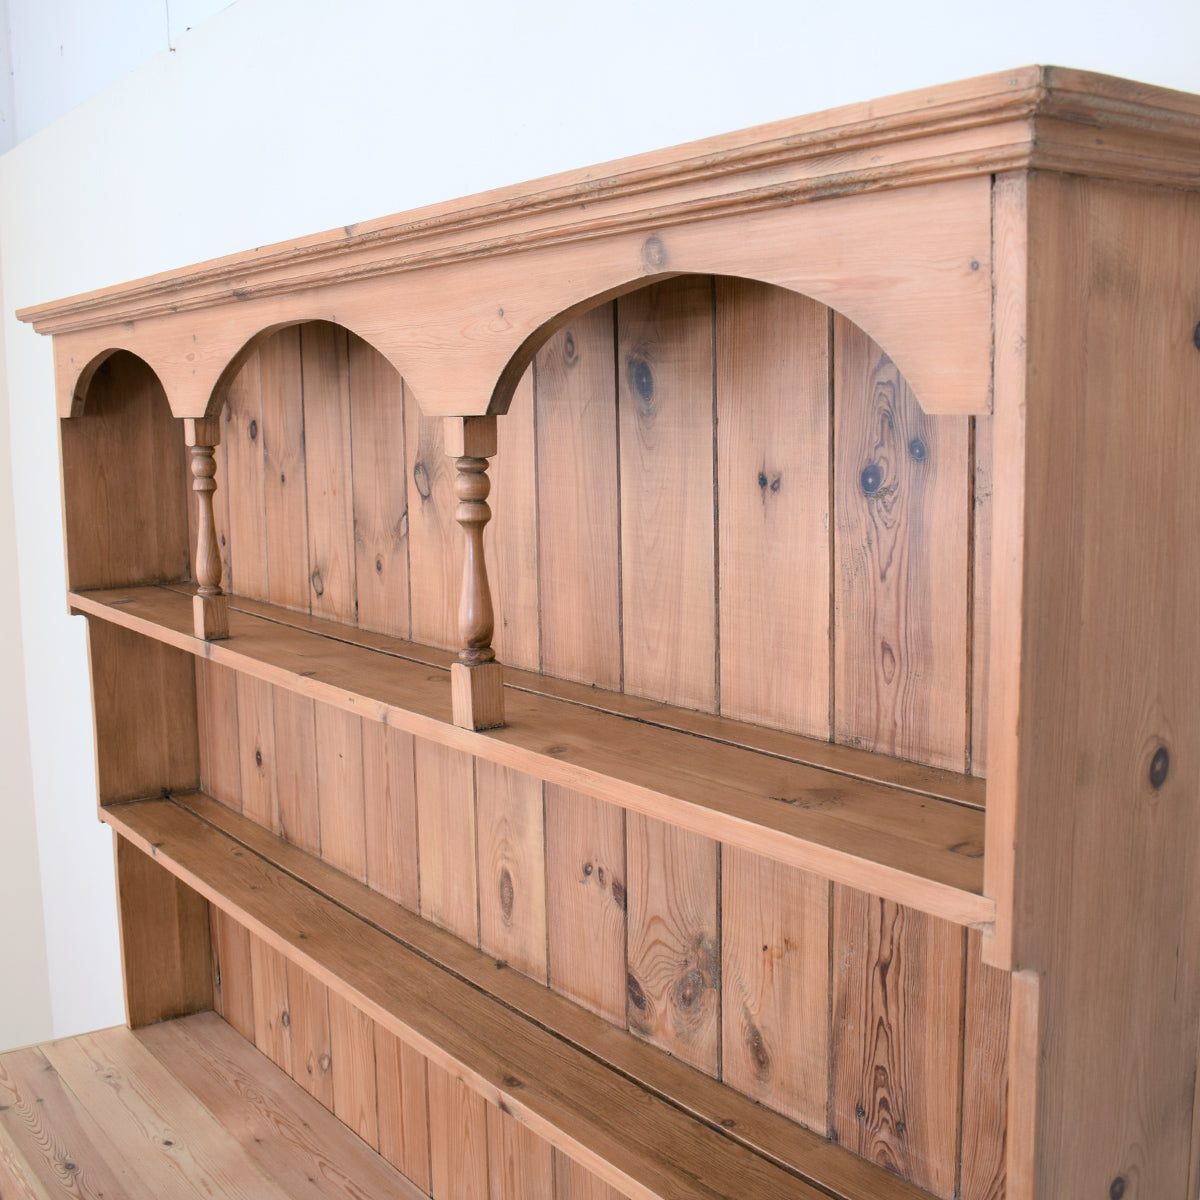 Large Rustic Pine Kitchen Dresser